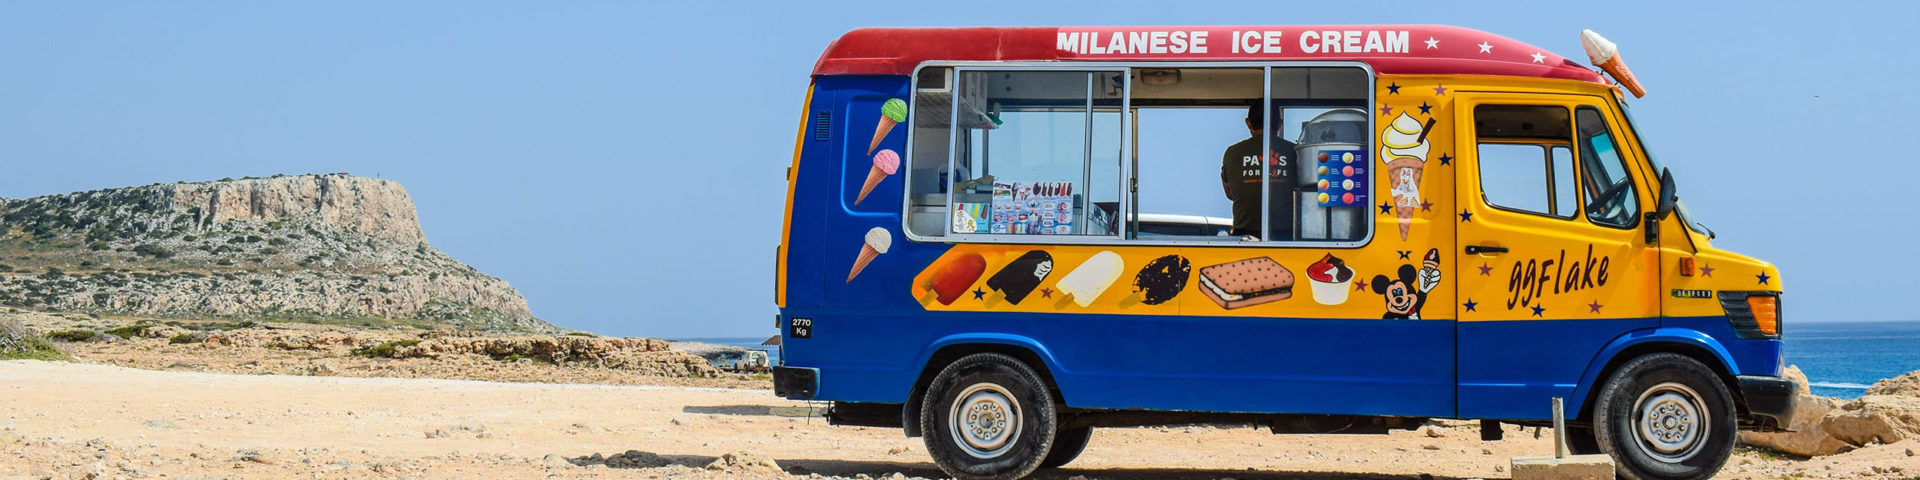 CoffeeMeetsBeach - Best Food Trucks in the Caribbean